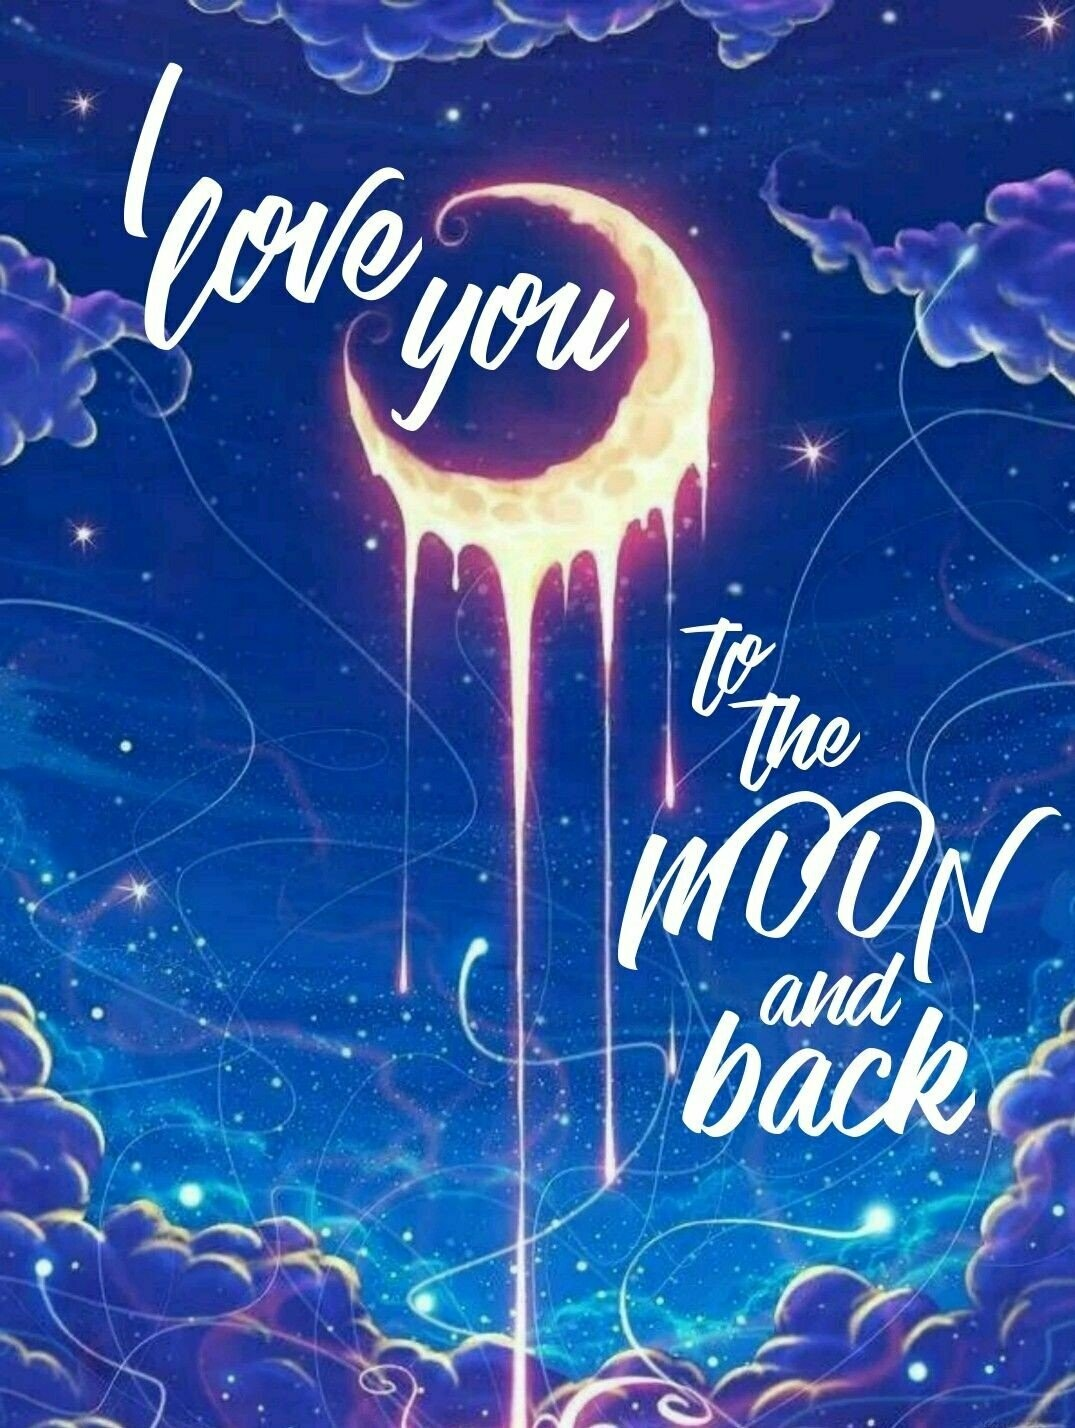 Love You To The Moon 01 - Full Drill Diamond Painting - Specially ordered for you. Delivery is approximately 4 - 6 weeks.